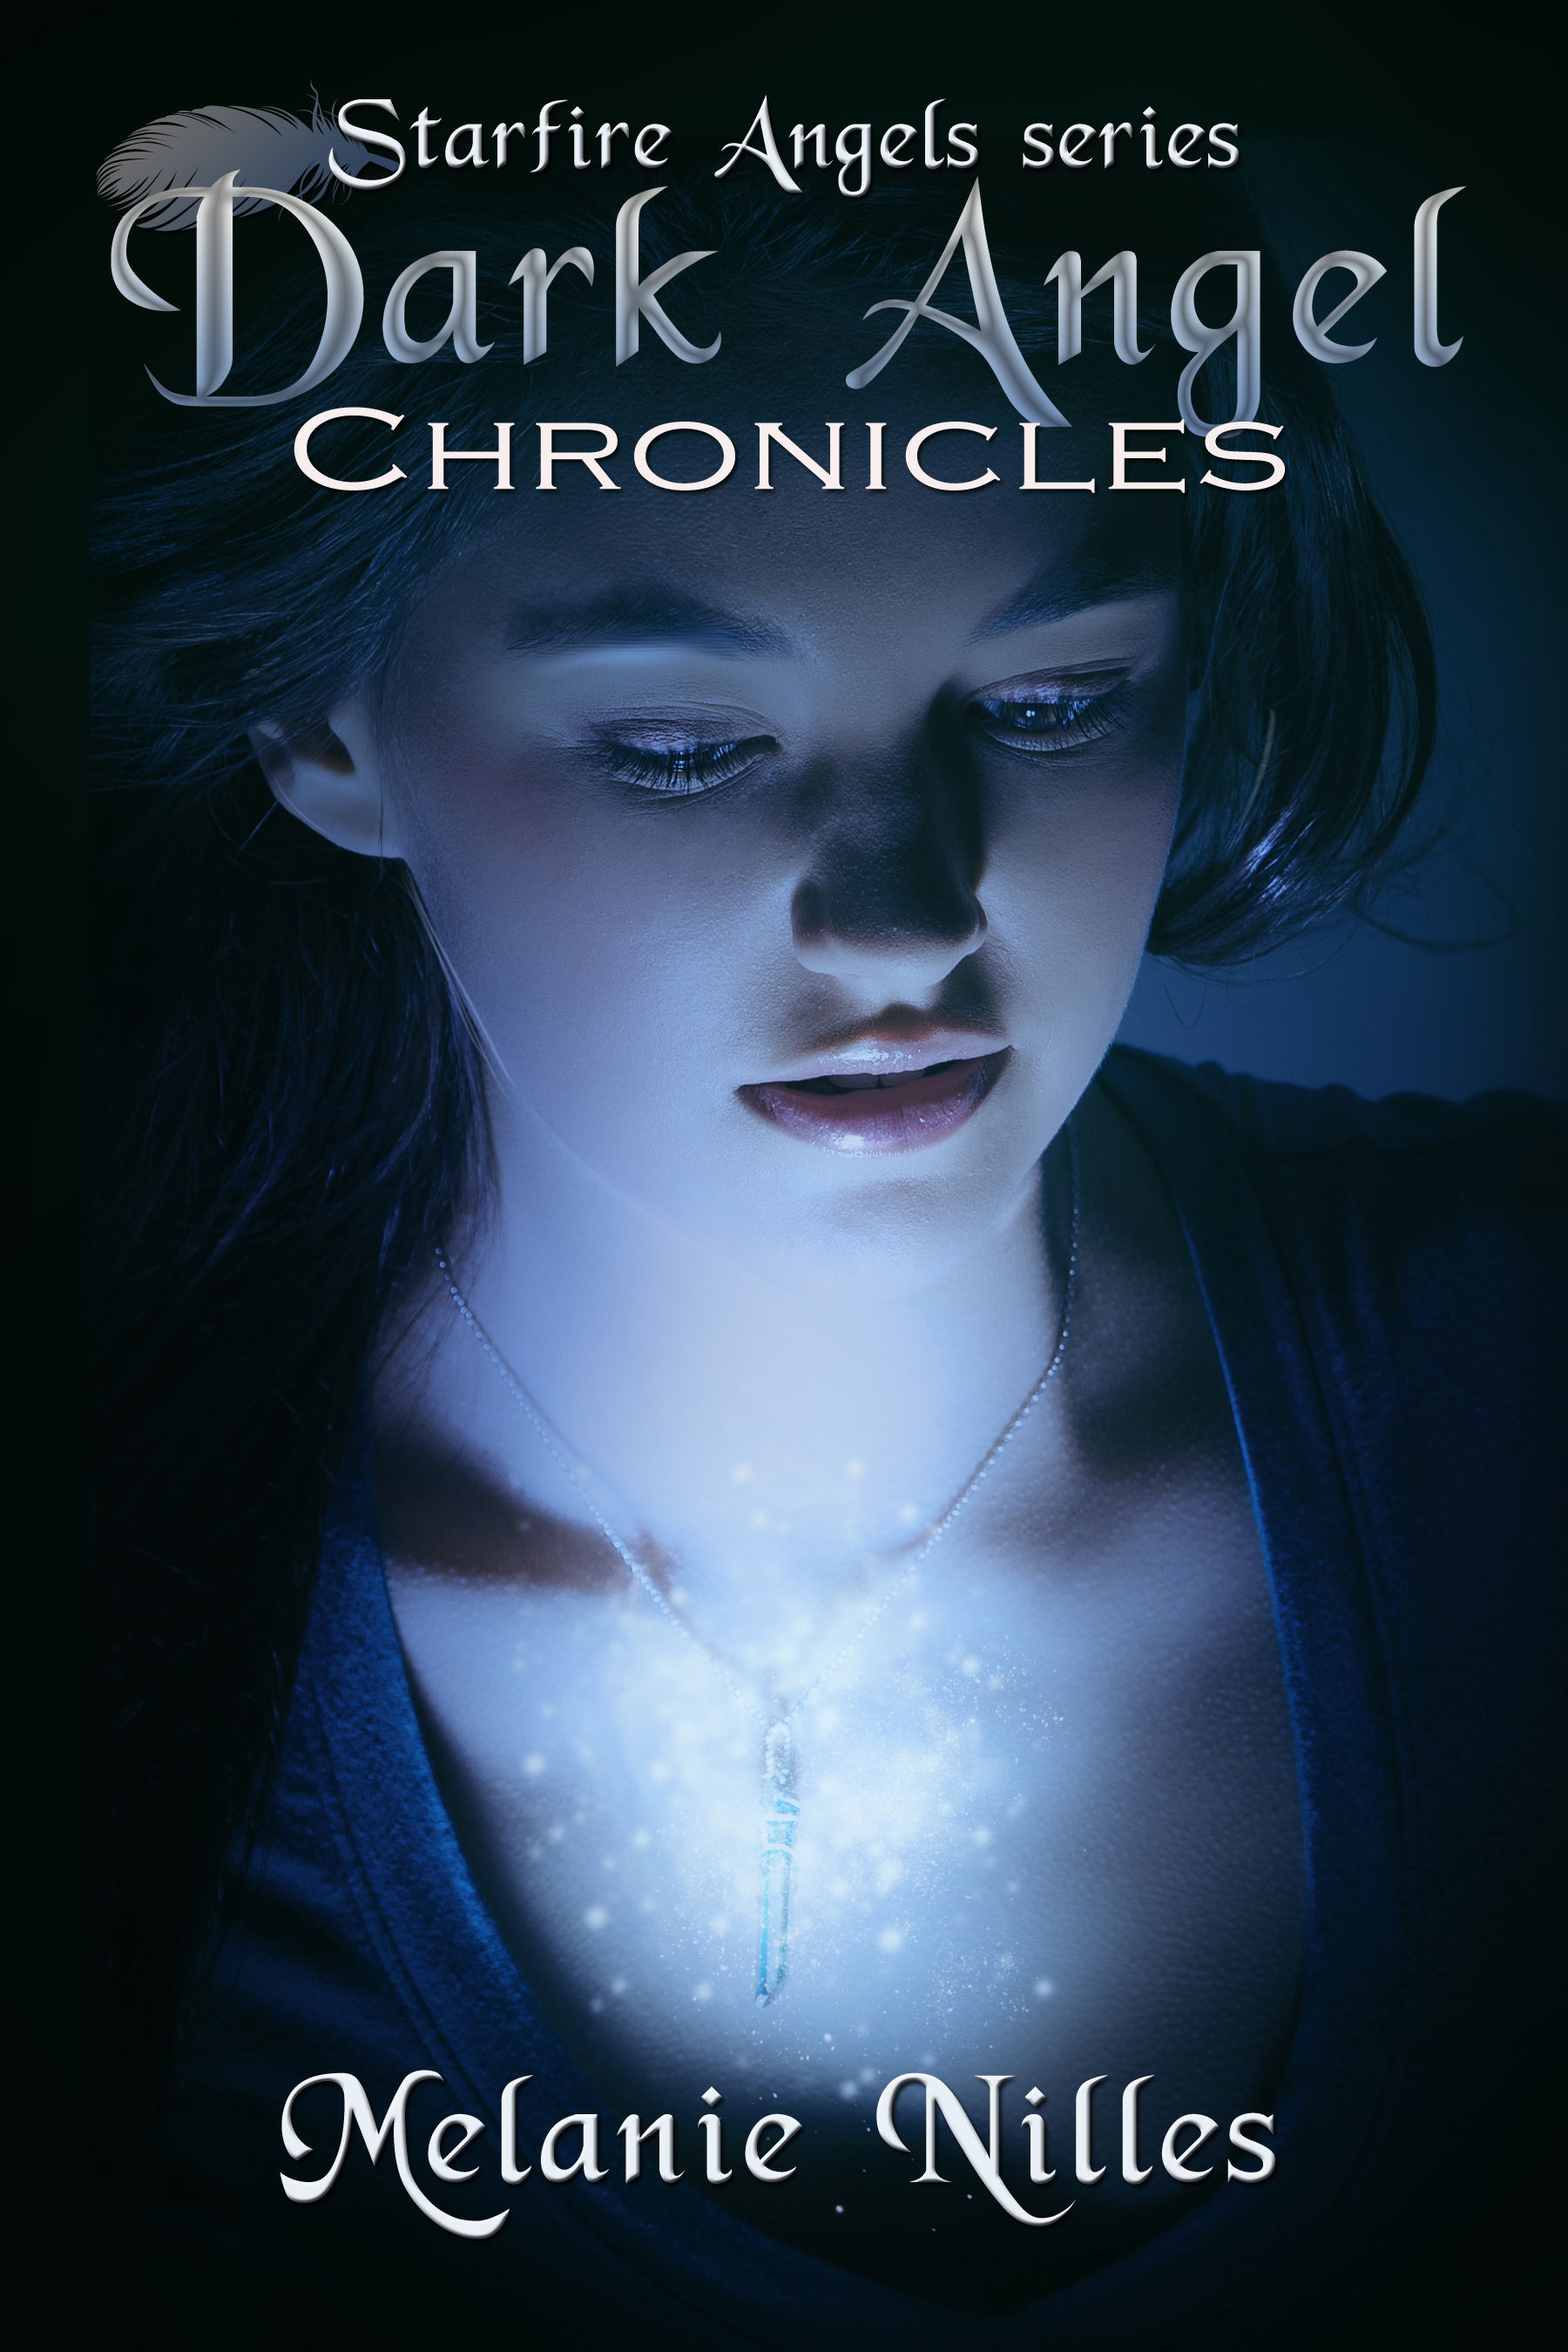 Dark Angel Chronicles, The Complete Series (Starfire Angels Books 1-4)